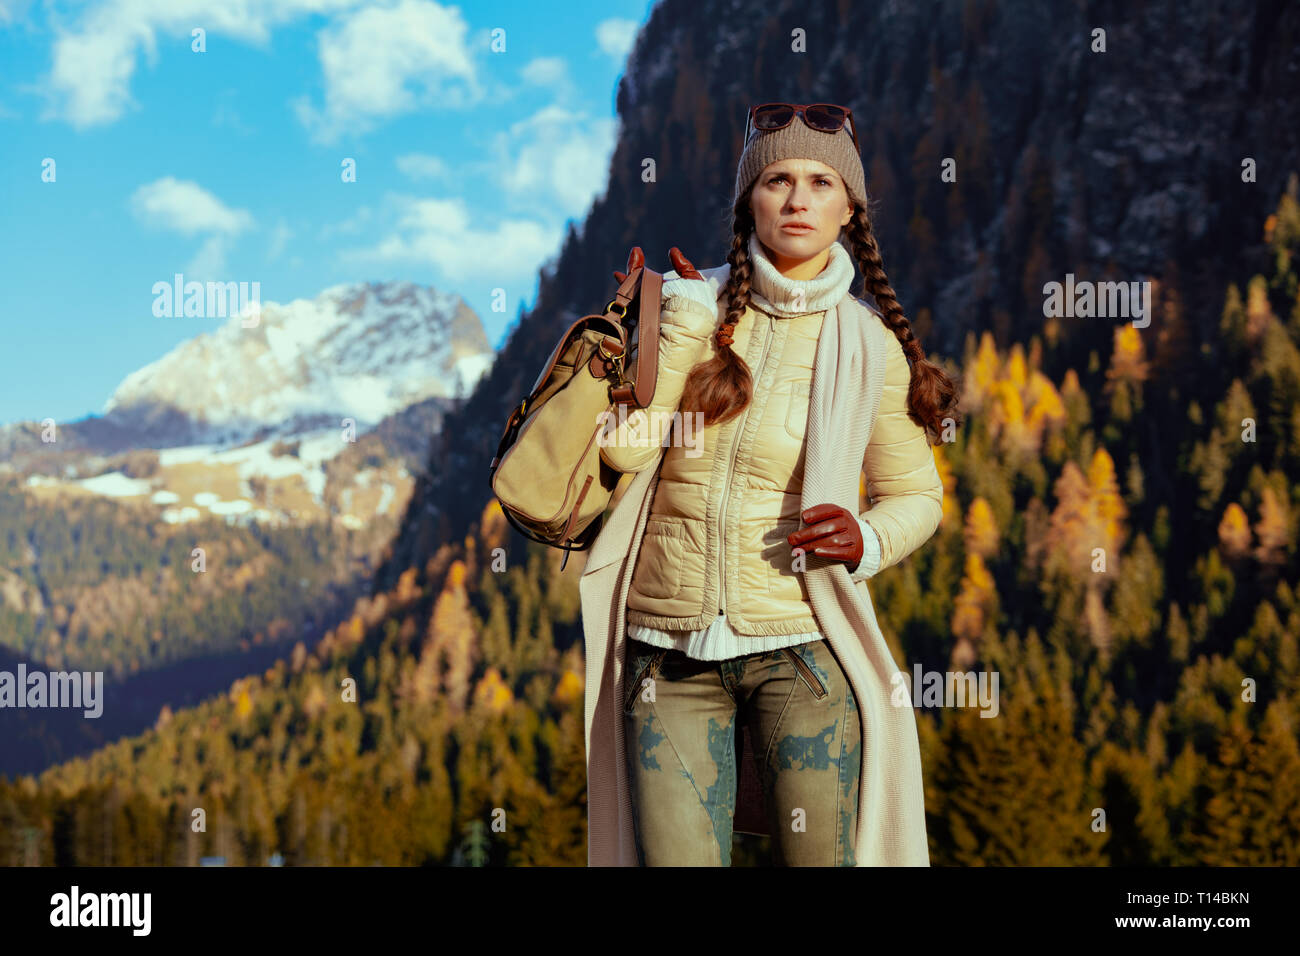 healthy tourist woman in hiking clothes with bag looking into the distance against mountain scenery in Alto Adige, Italy. - Stock Image